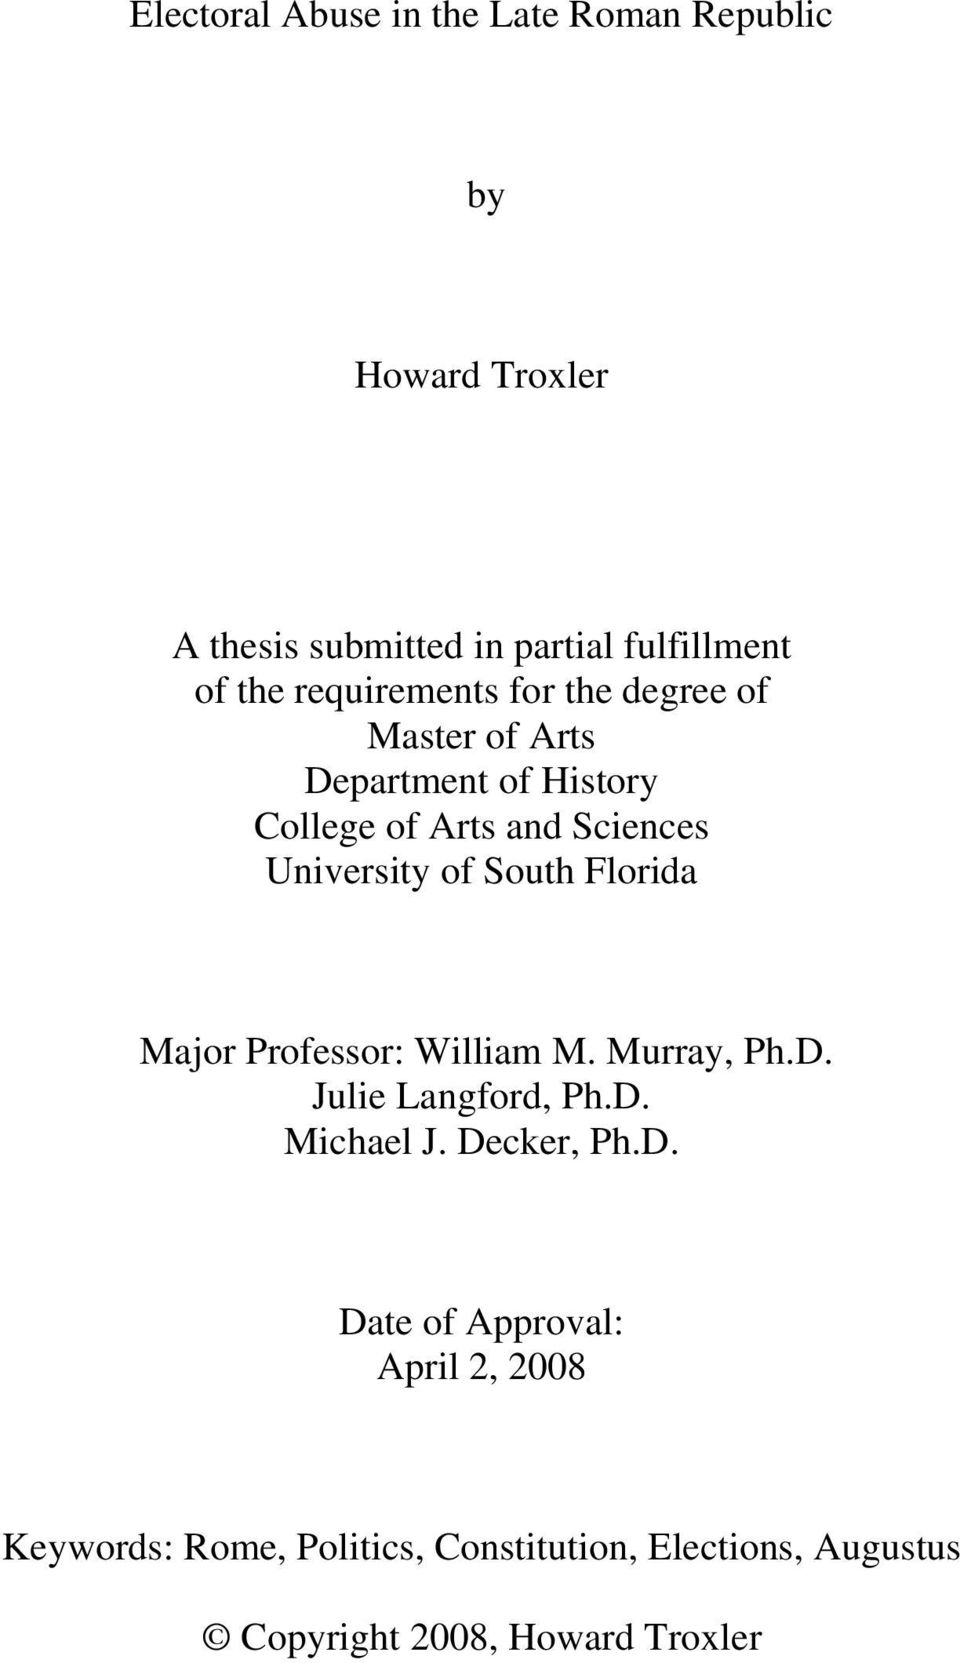 This thesis is submitted in partial fulfilment of the requirements